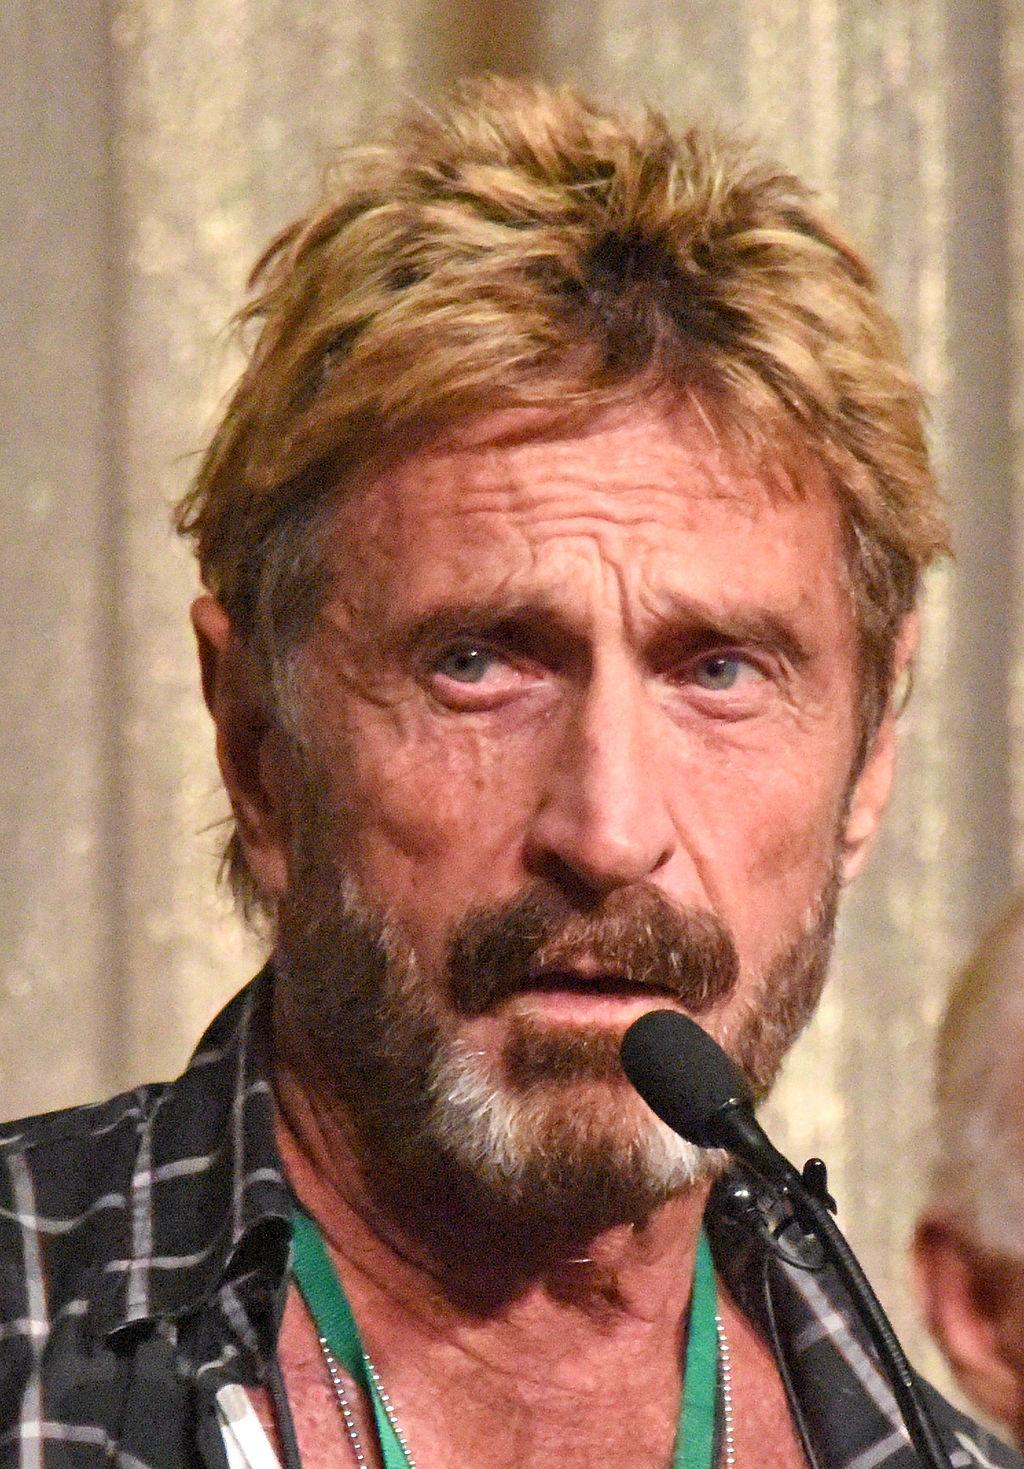 John McAfee speaking at Def Con in 2014